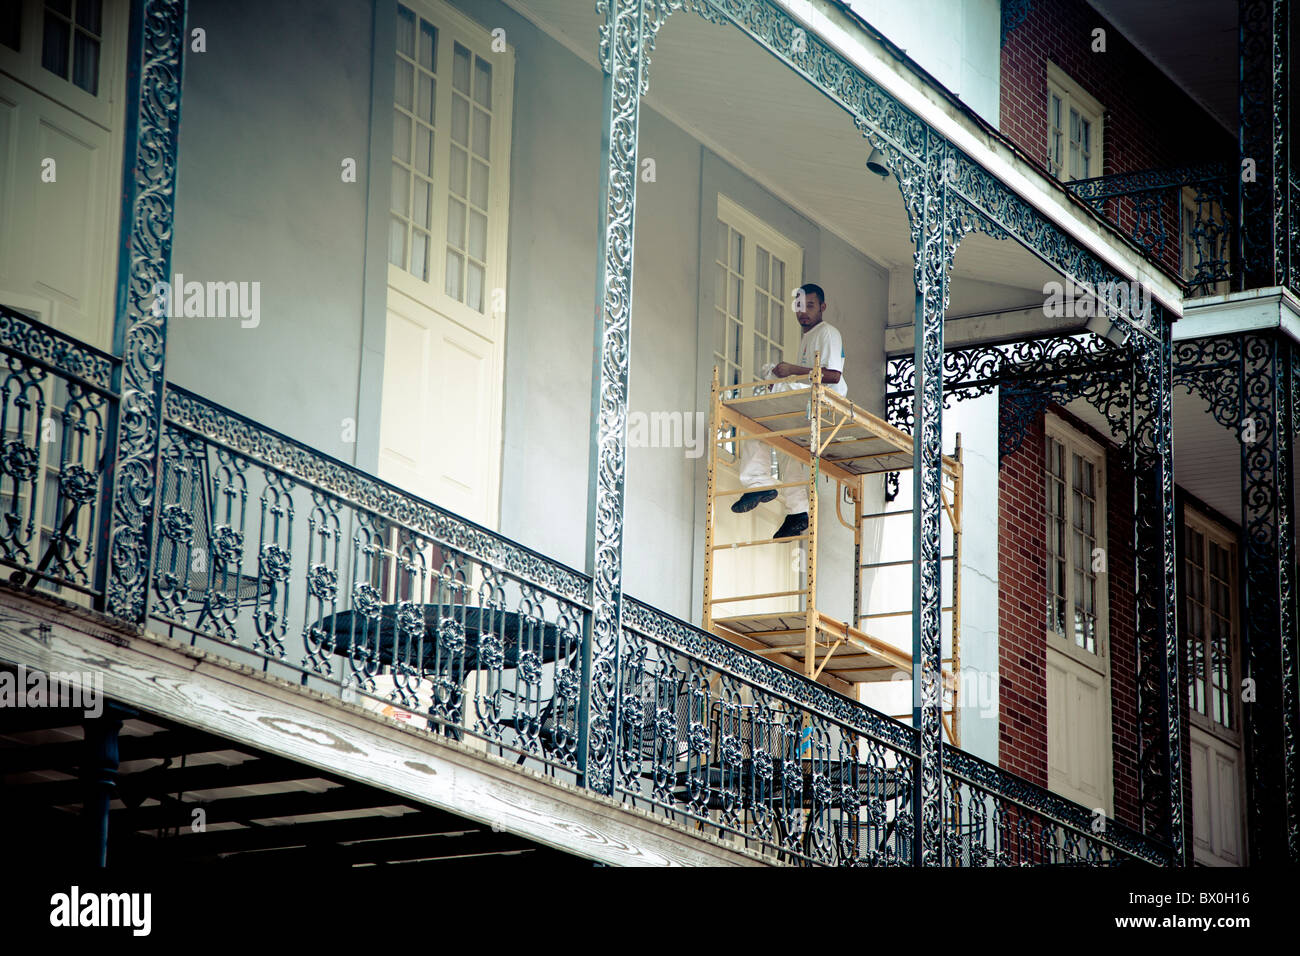 The Spanish Style Architecture Of The French Quarter In New Orleans Stock Pho